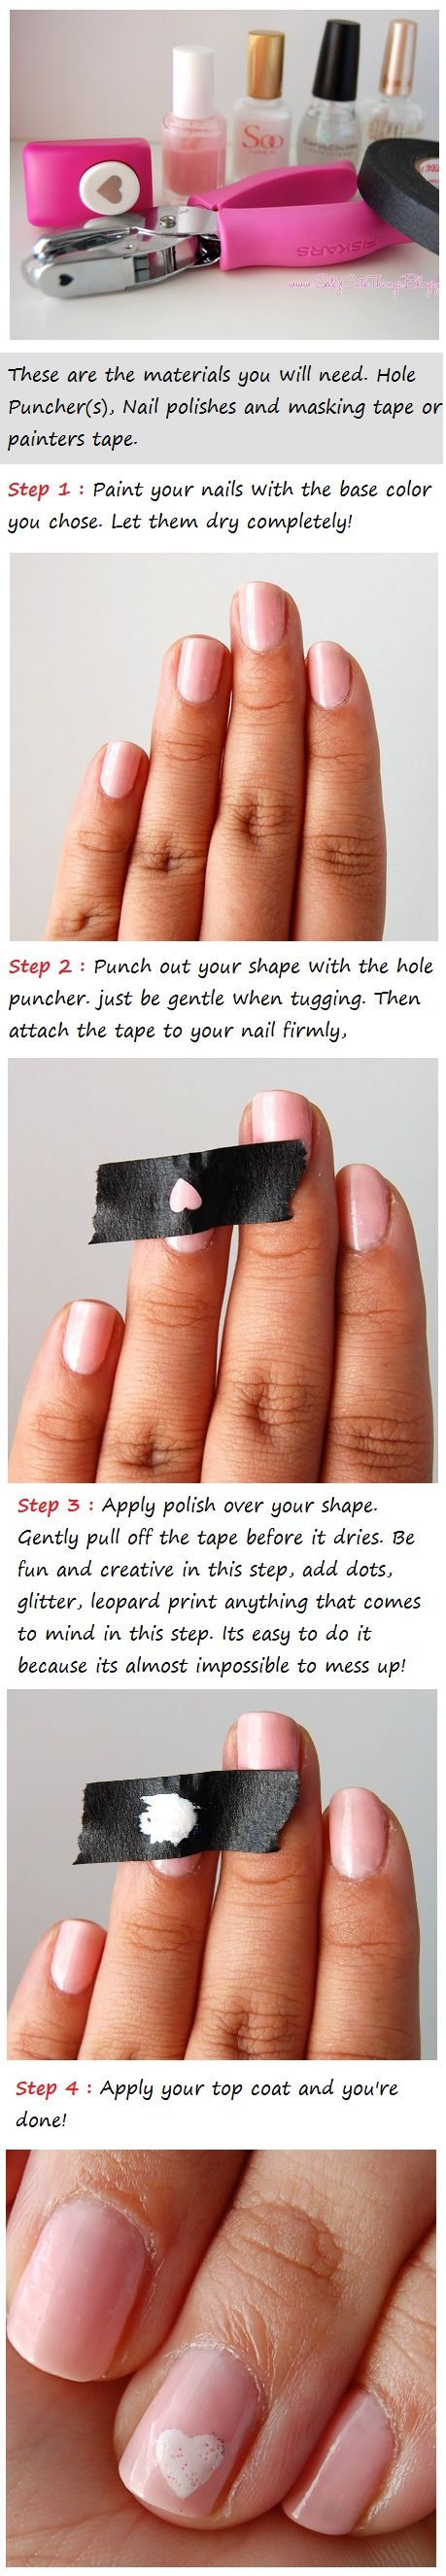 Make heart on your Nails | Manicure Tutorials